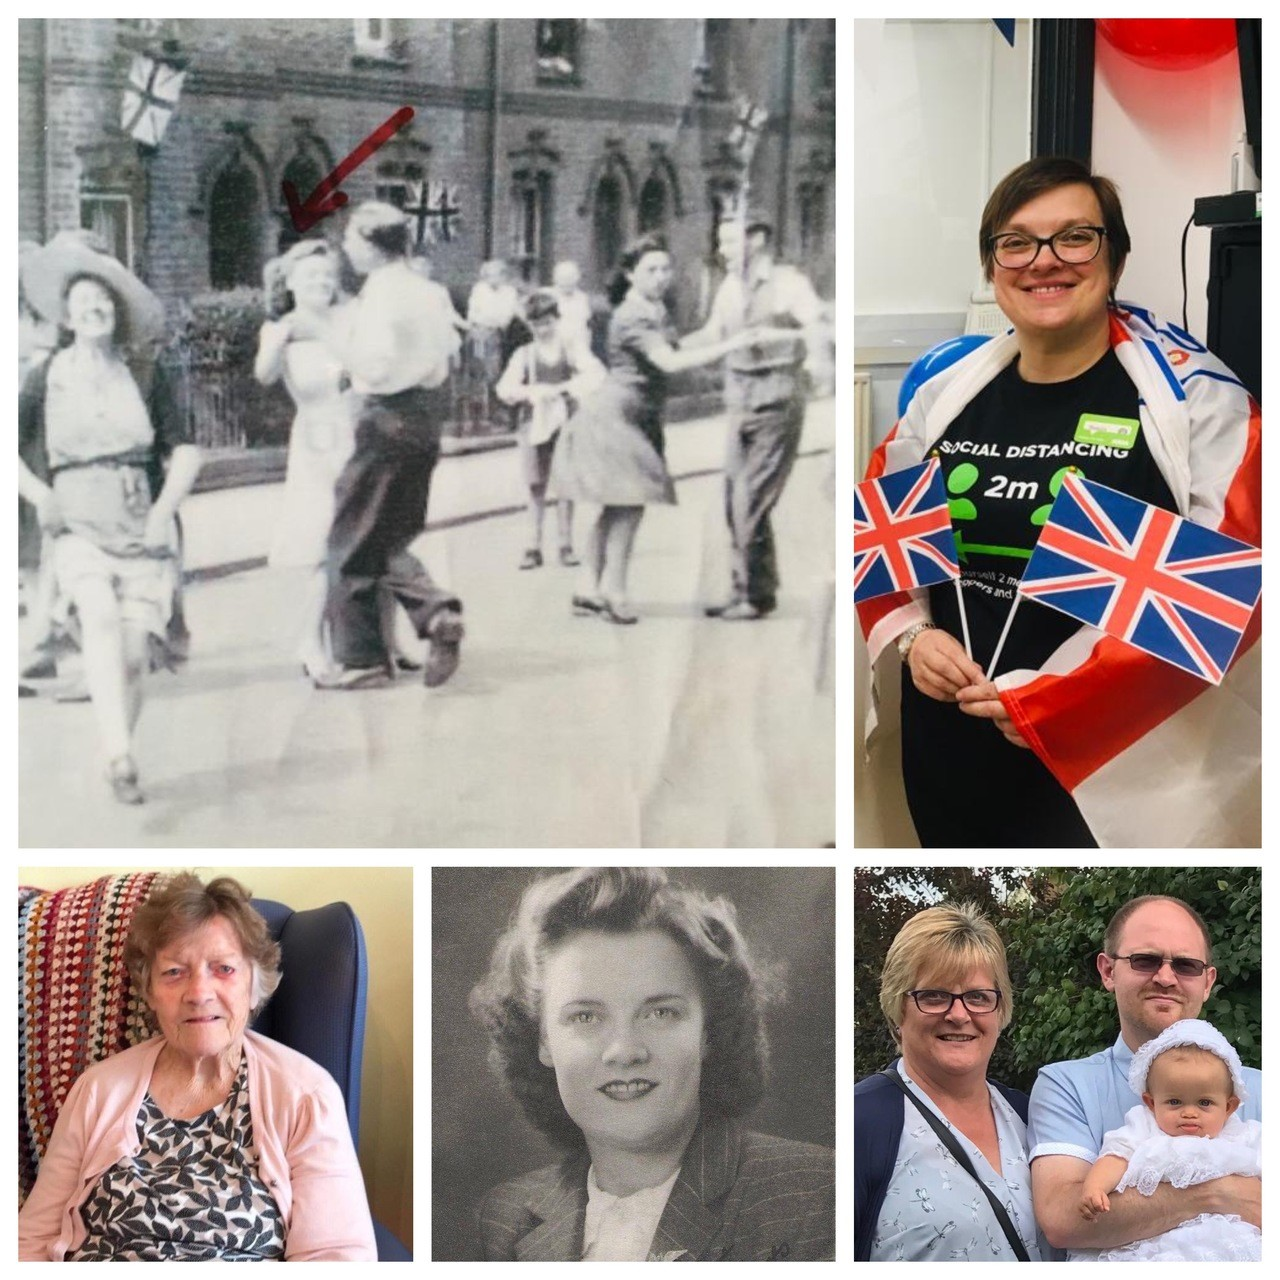 VE Day 75th anniversary celebrations at Asda Lower Earley | Asda Lower Earley